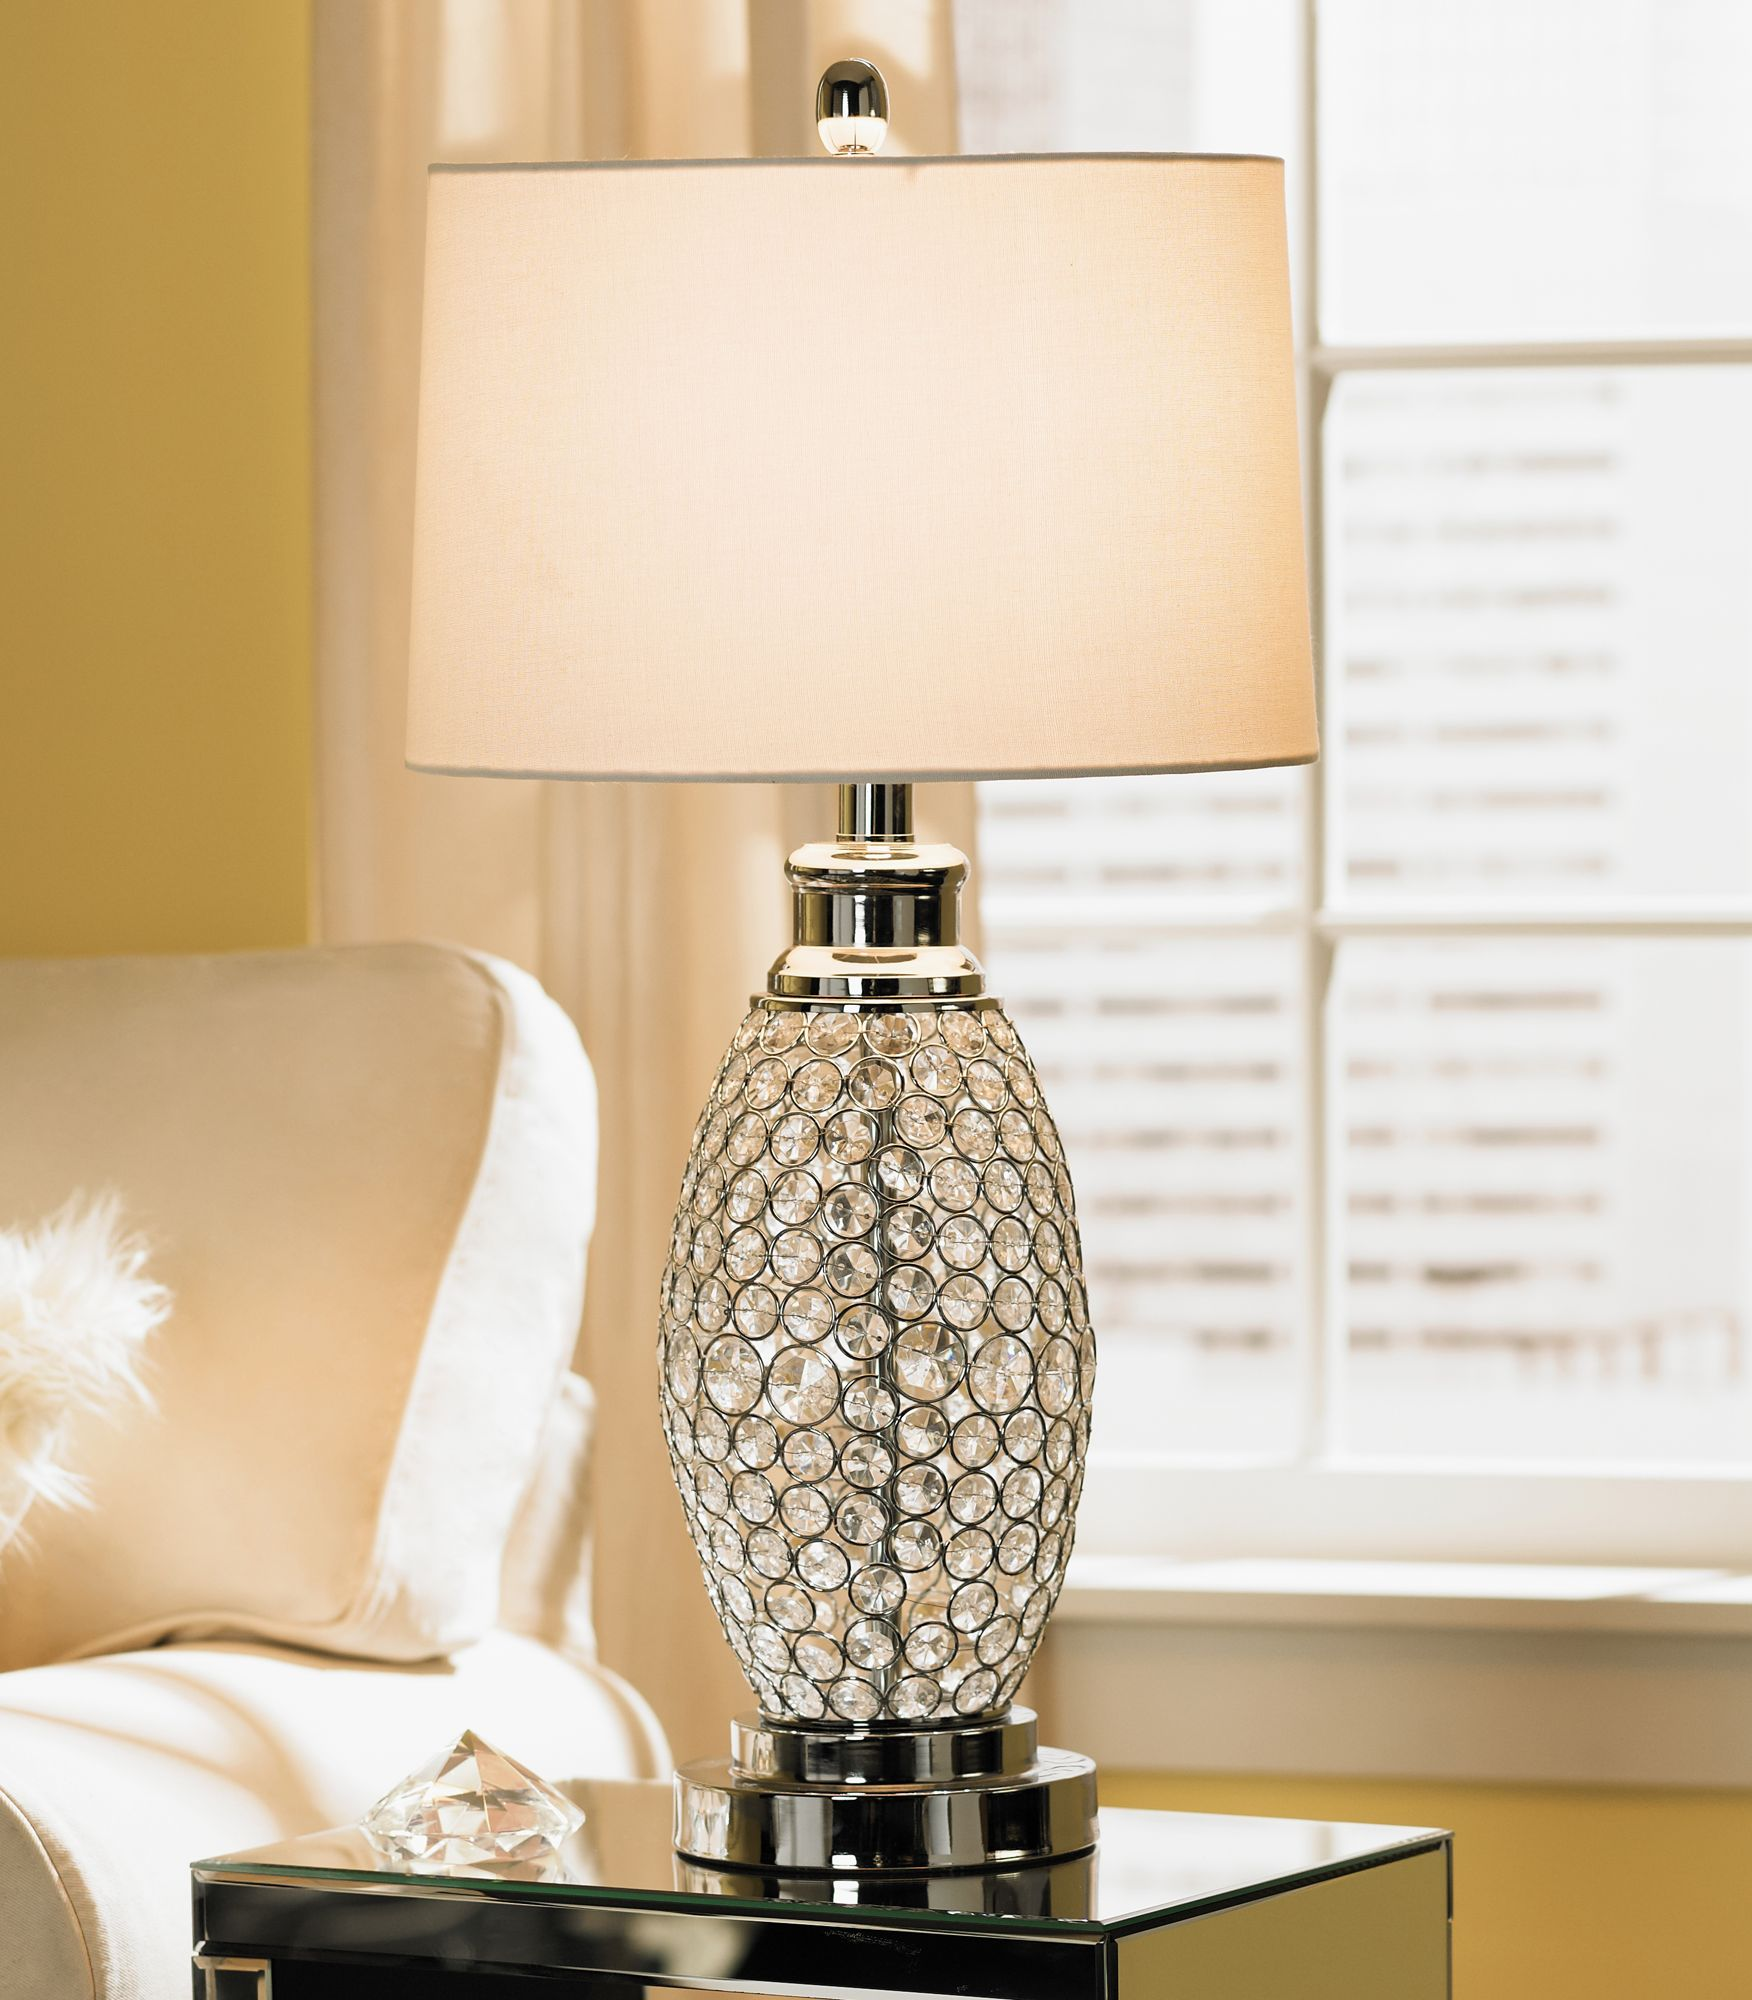 Nightstand Lamp Possini Euro Design Beaded Table Lamp